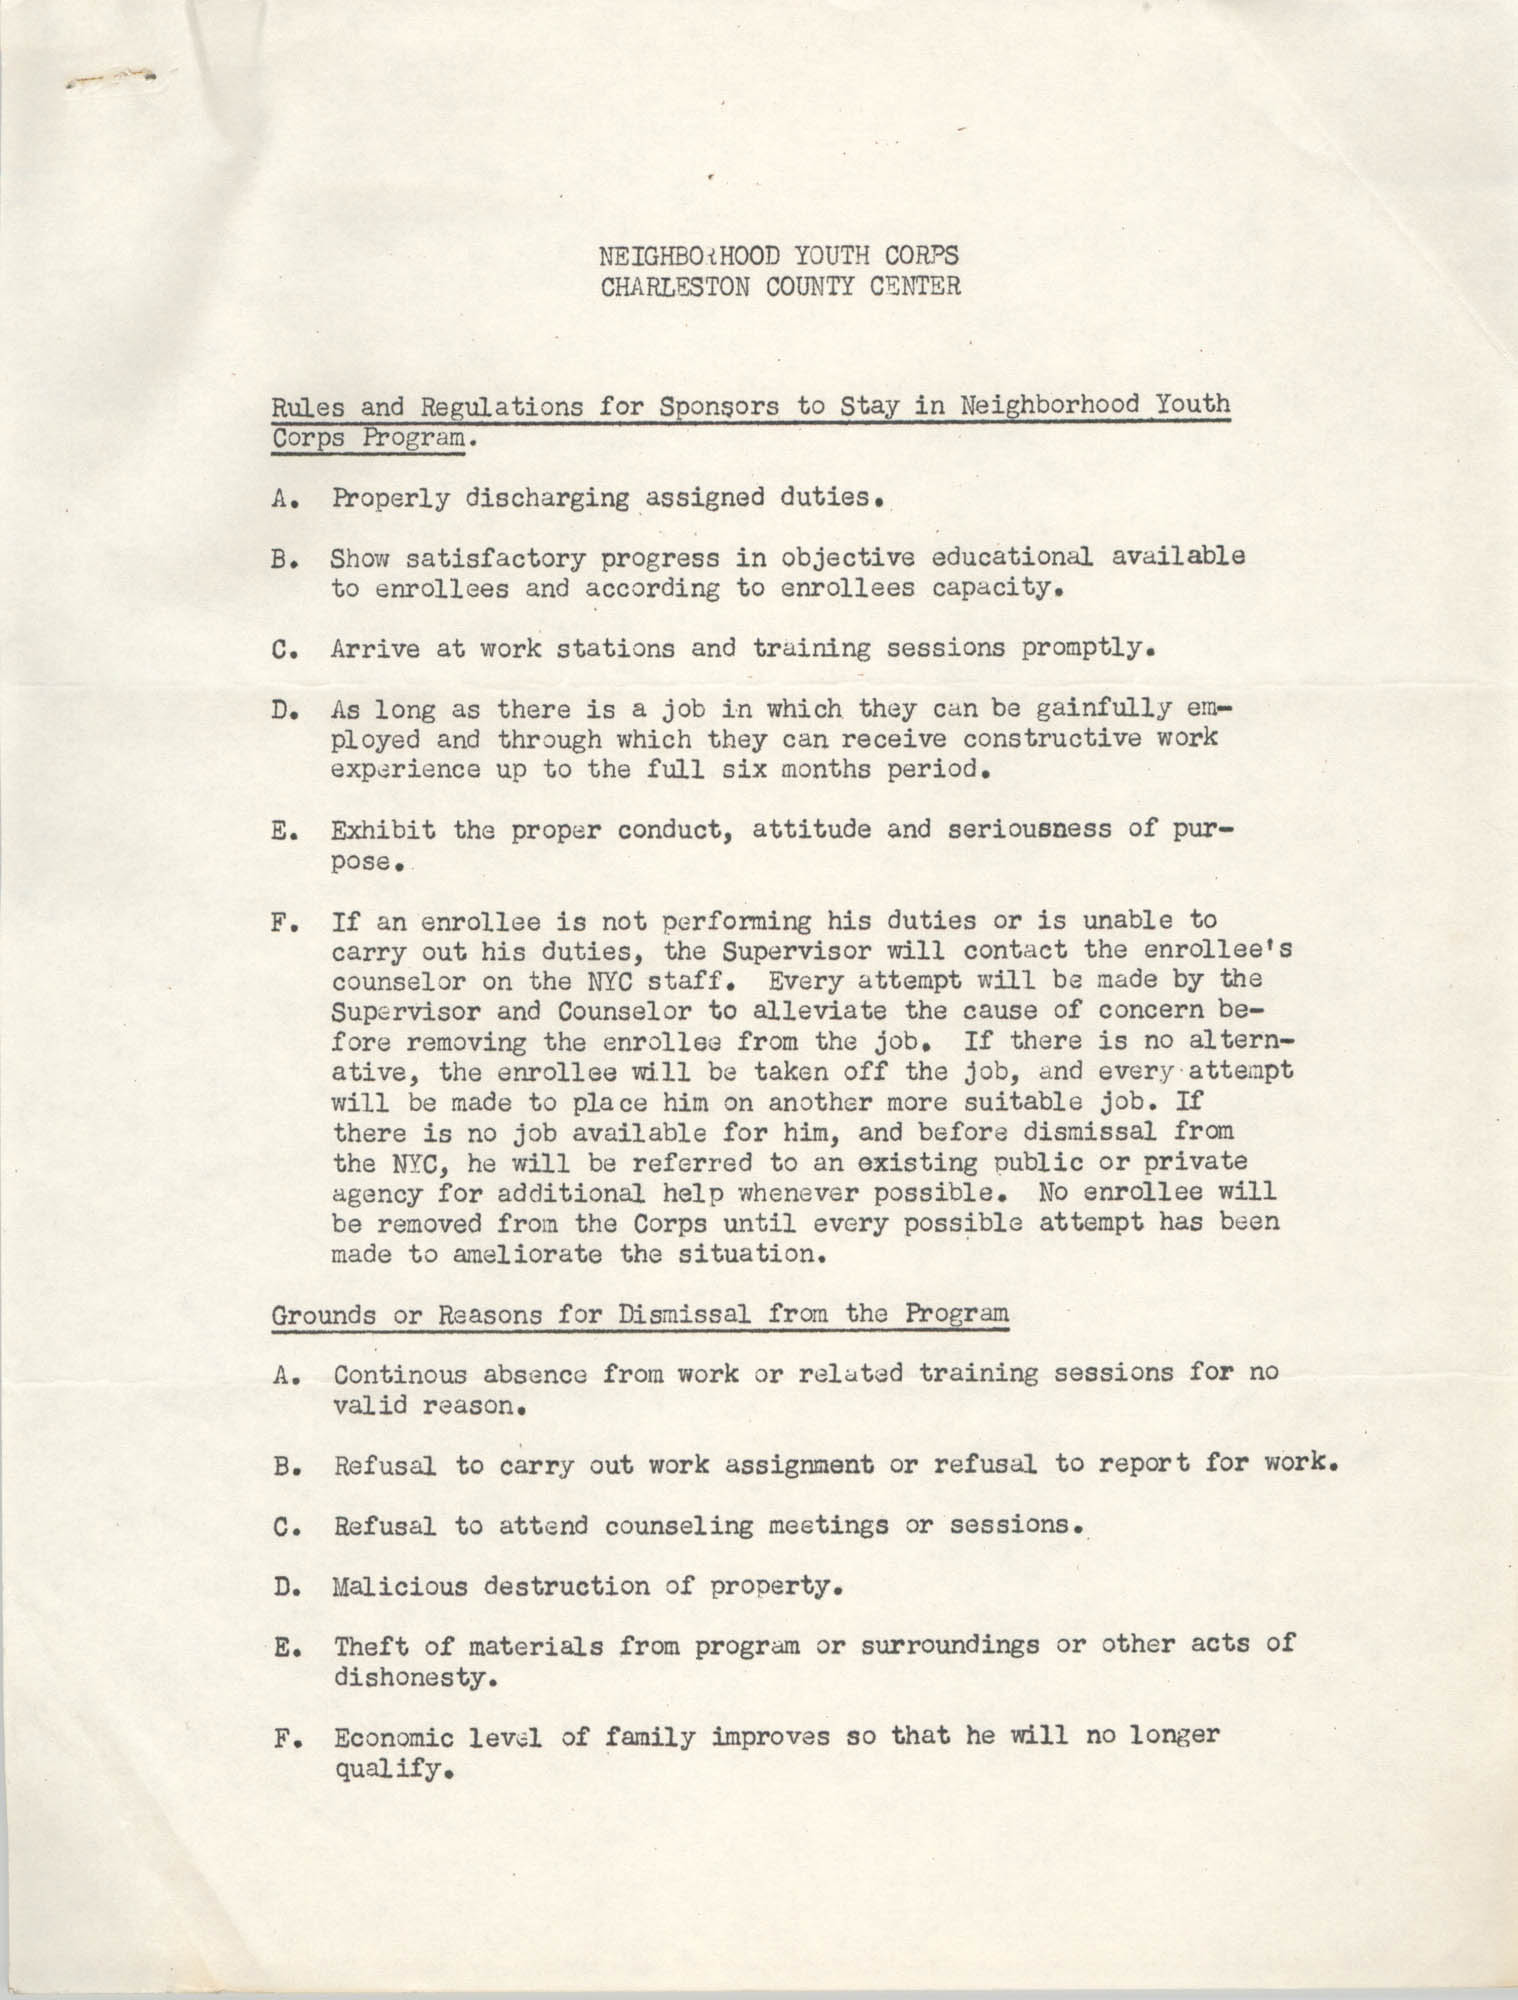 Neighborhood Youth Corps, Coming Street Y.W.C.A., Rules and Regulations, Page 1